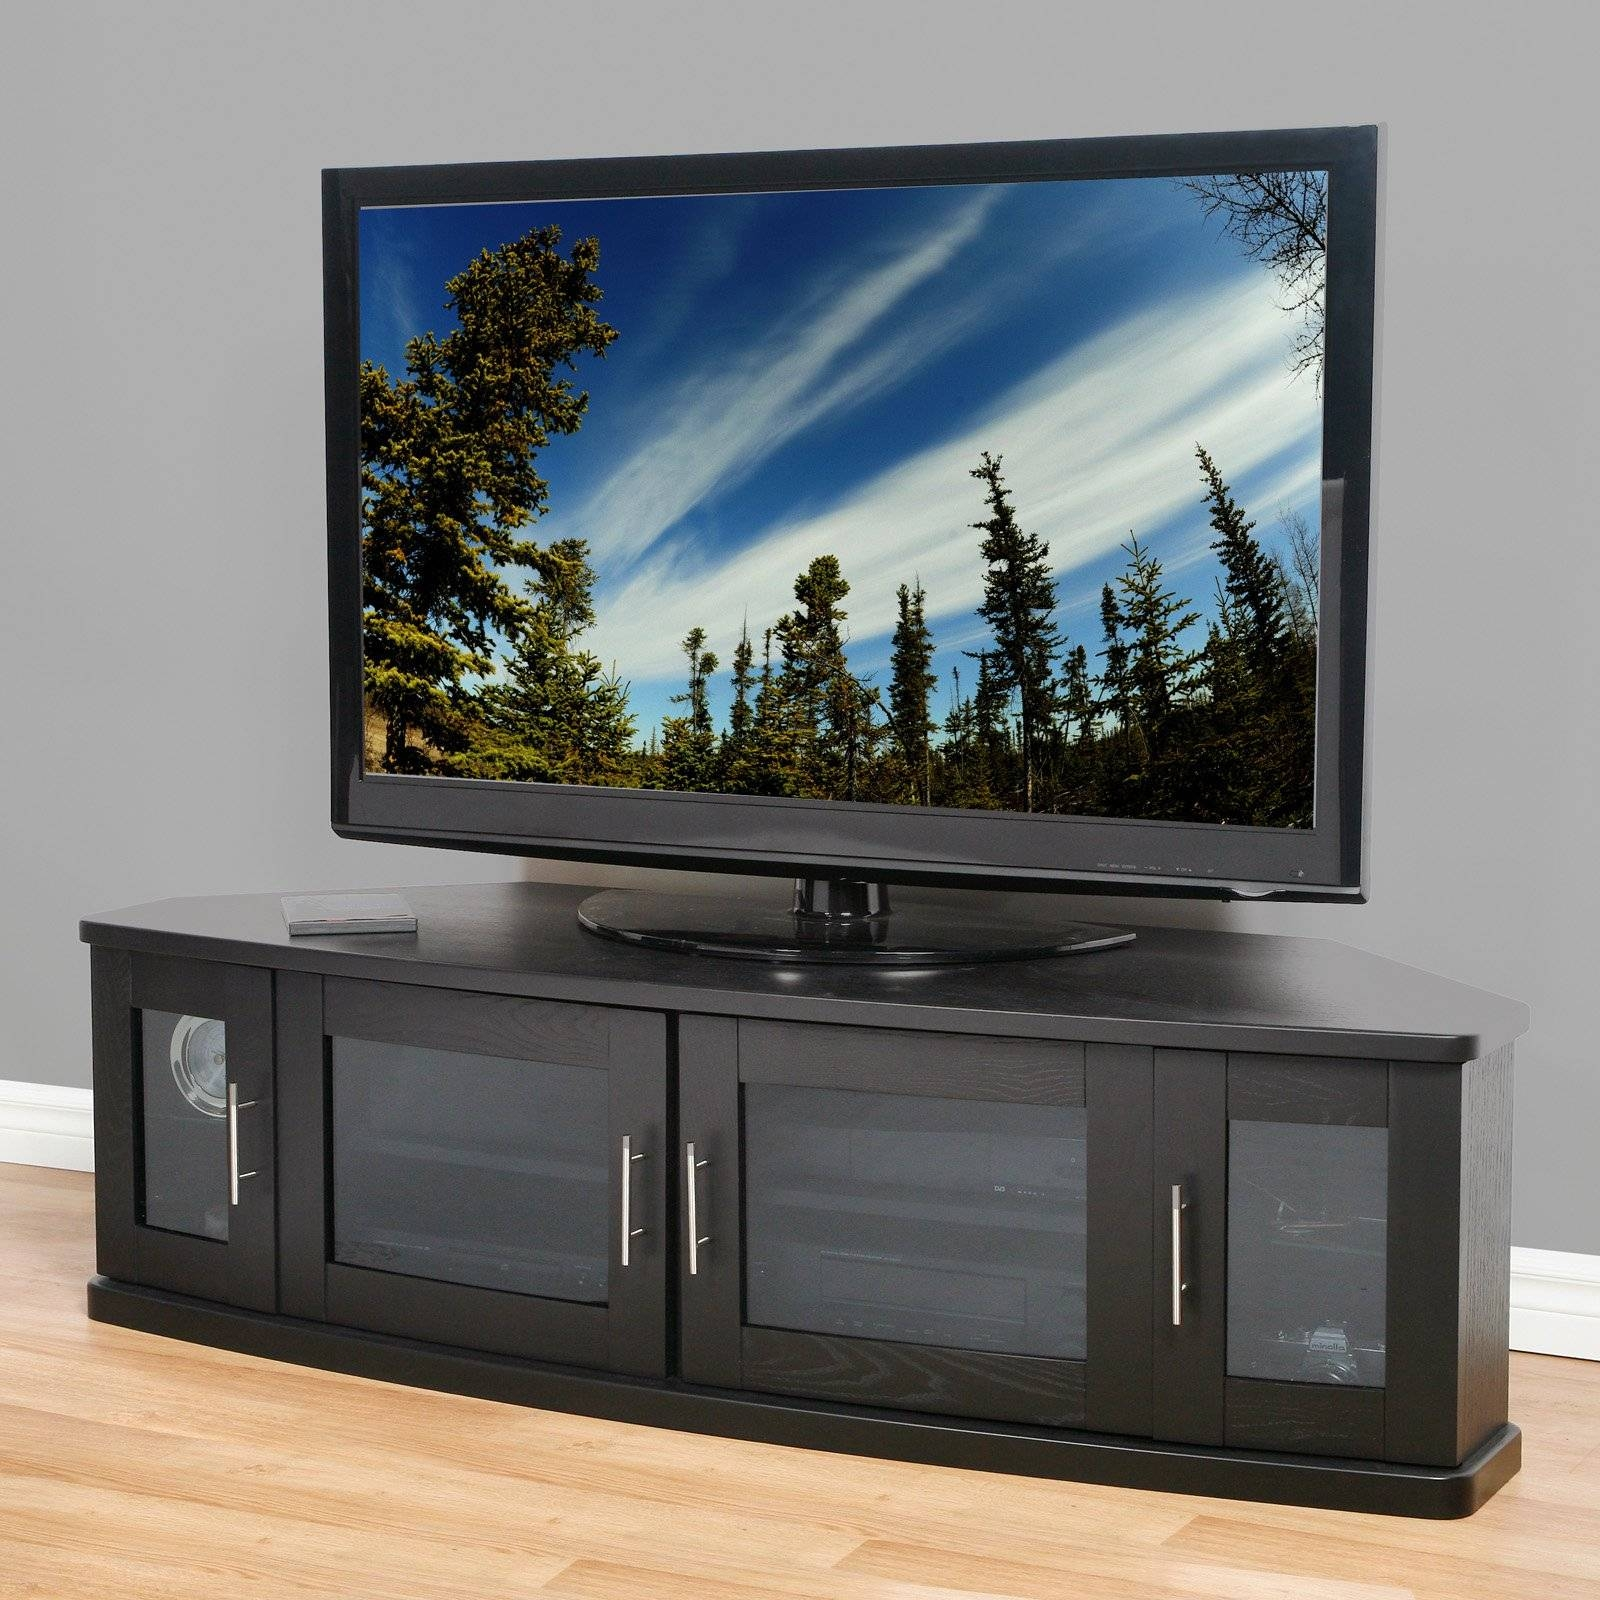 Large Corner Tv Cabinet With 4 Glass Doors And Silver Handle for Silver Corner Tv Stands (Image 3 of 15)